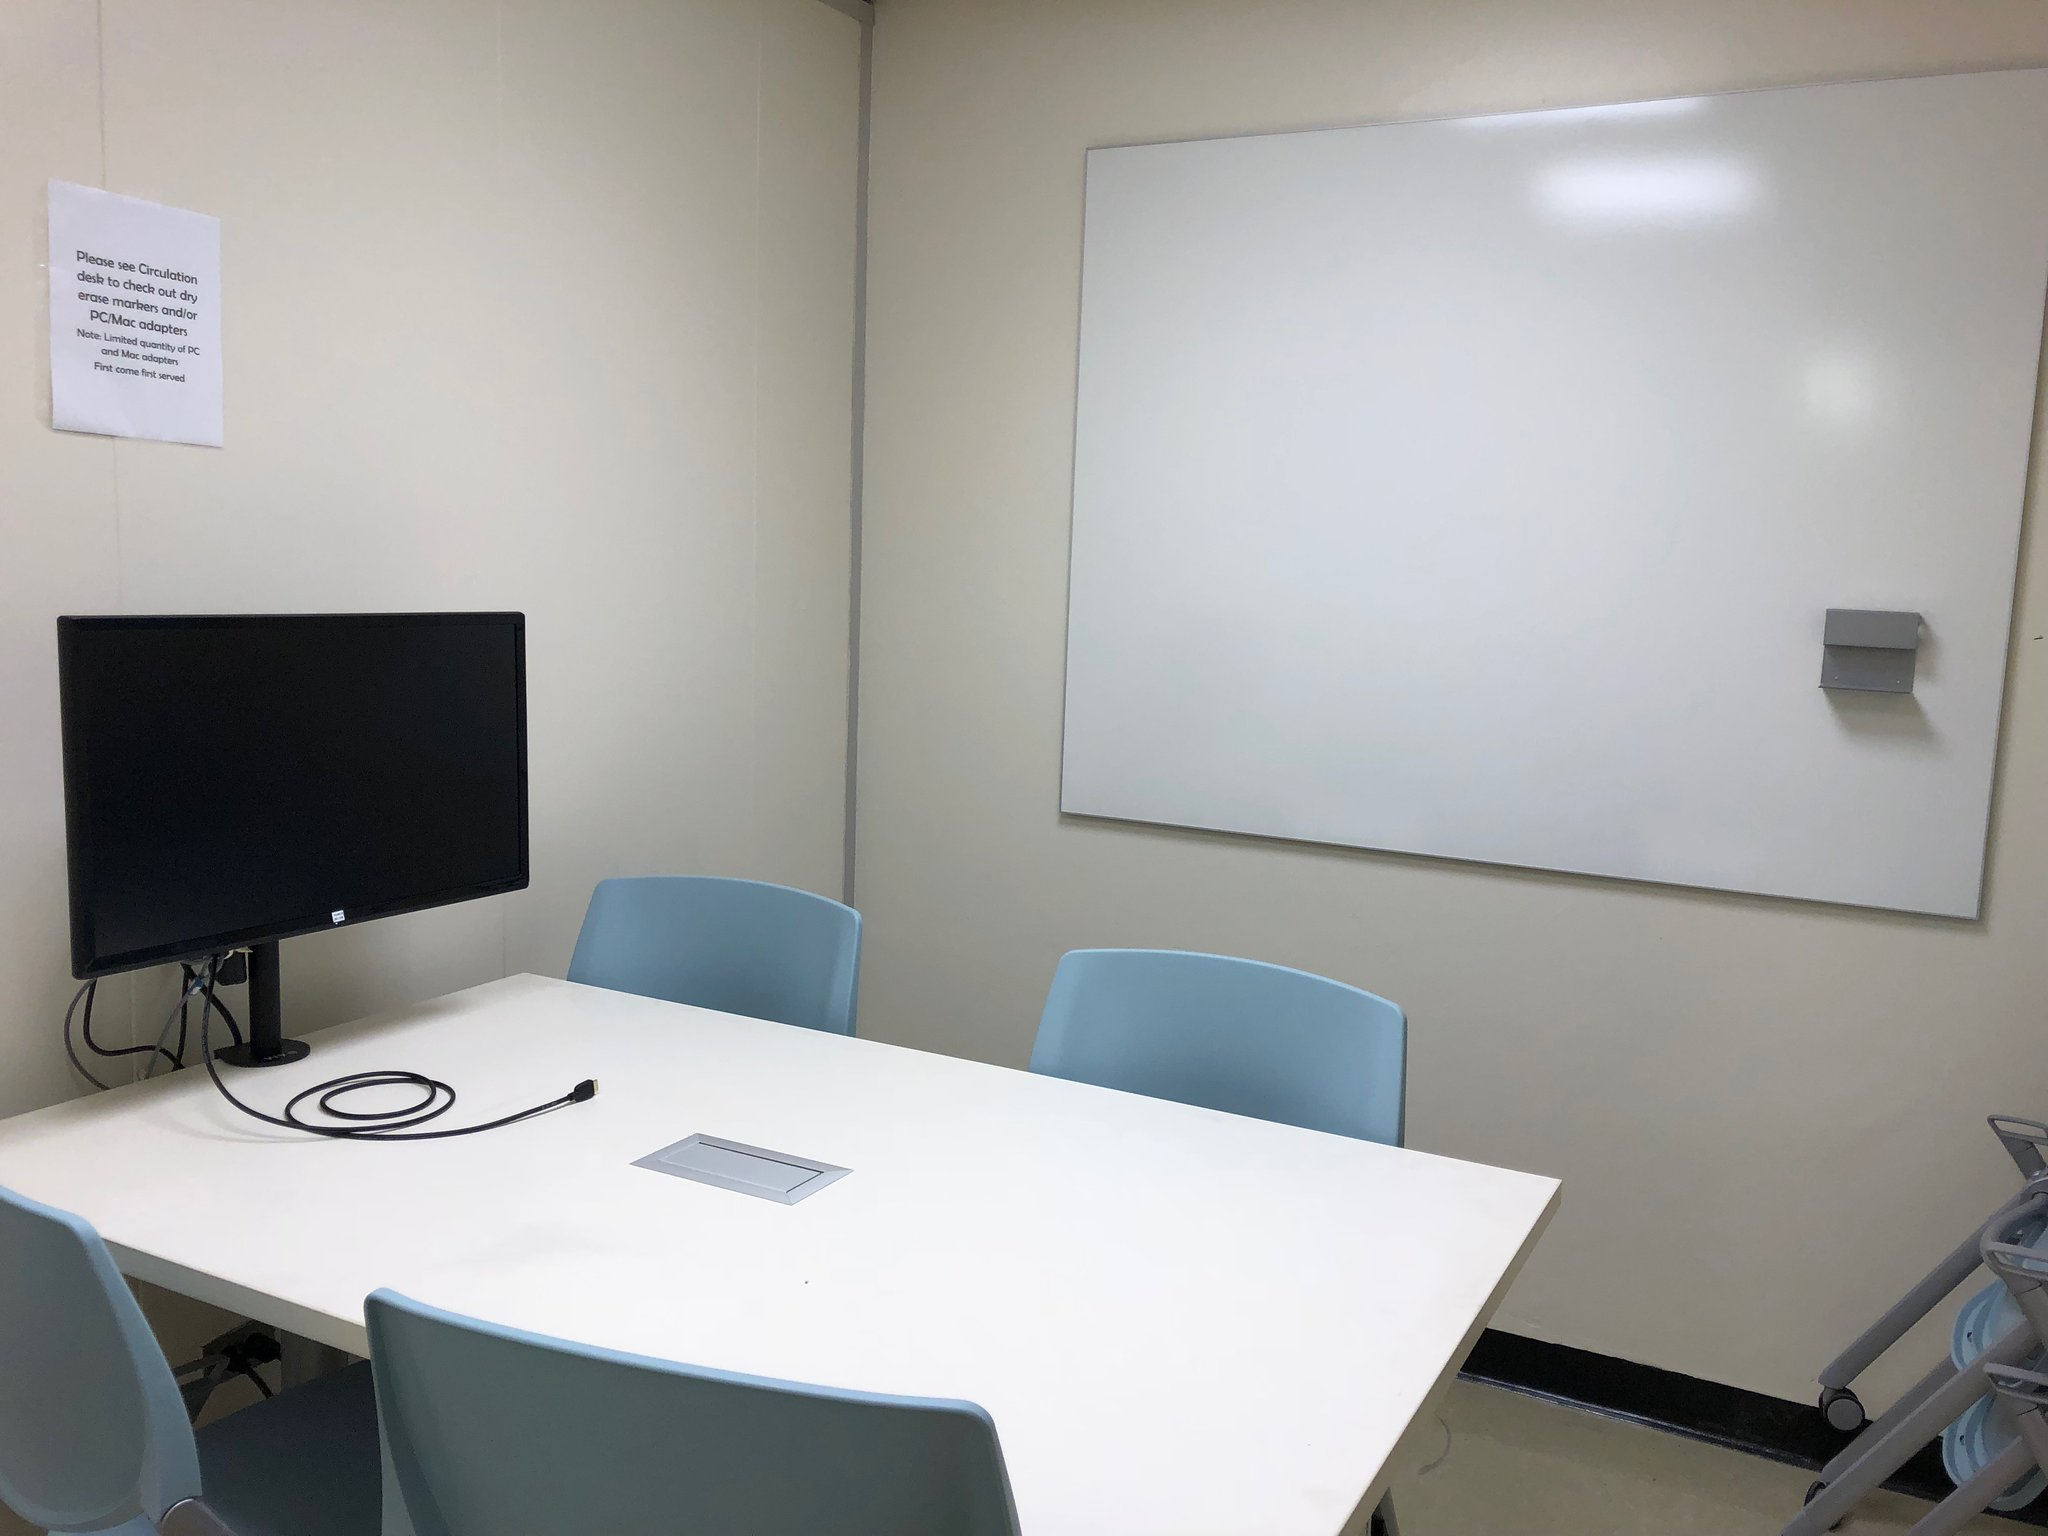 a group study room with 4 chairs, a table, monitor, and whiteboard